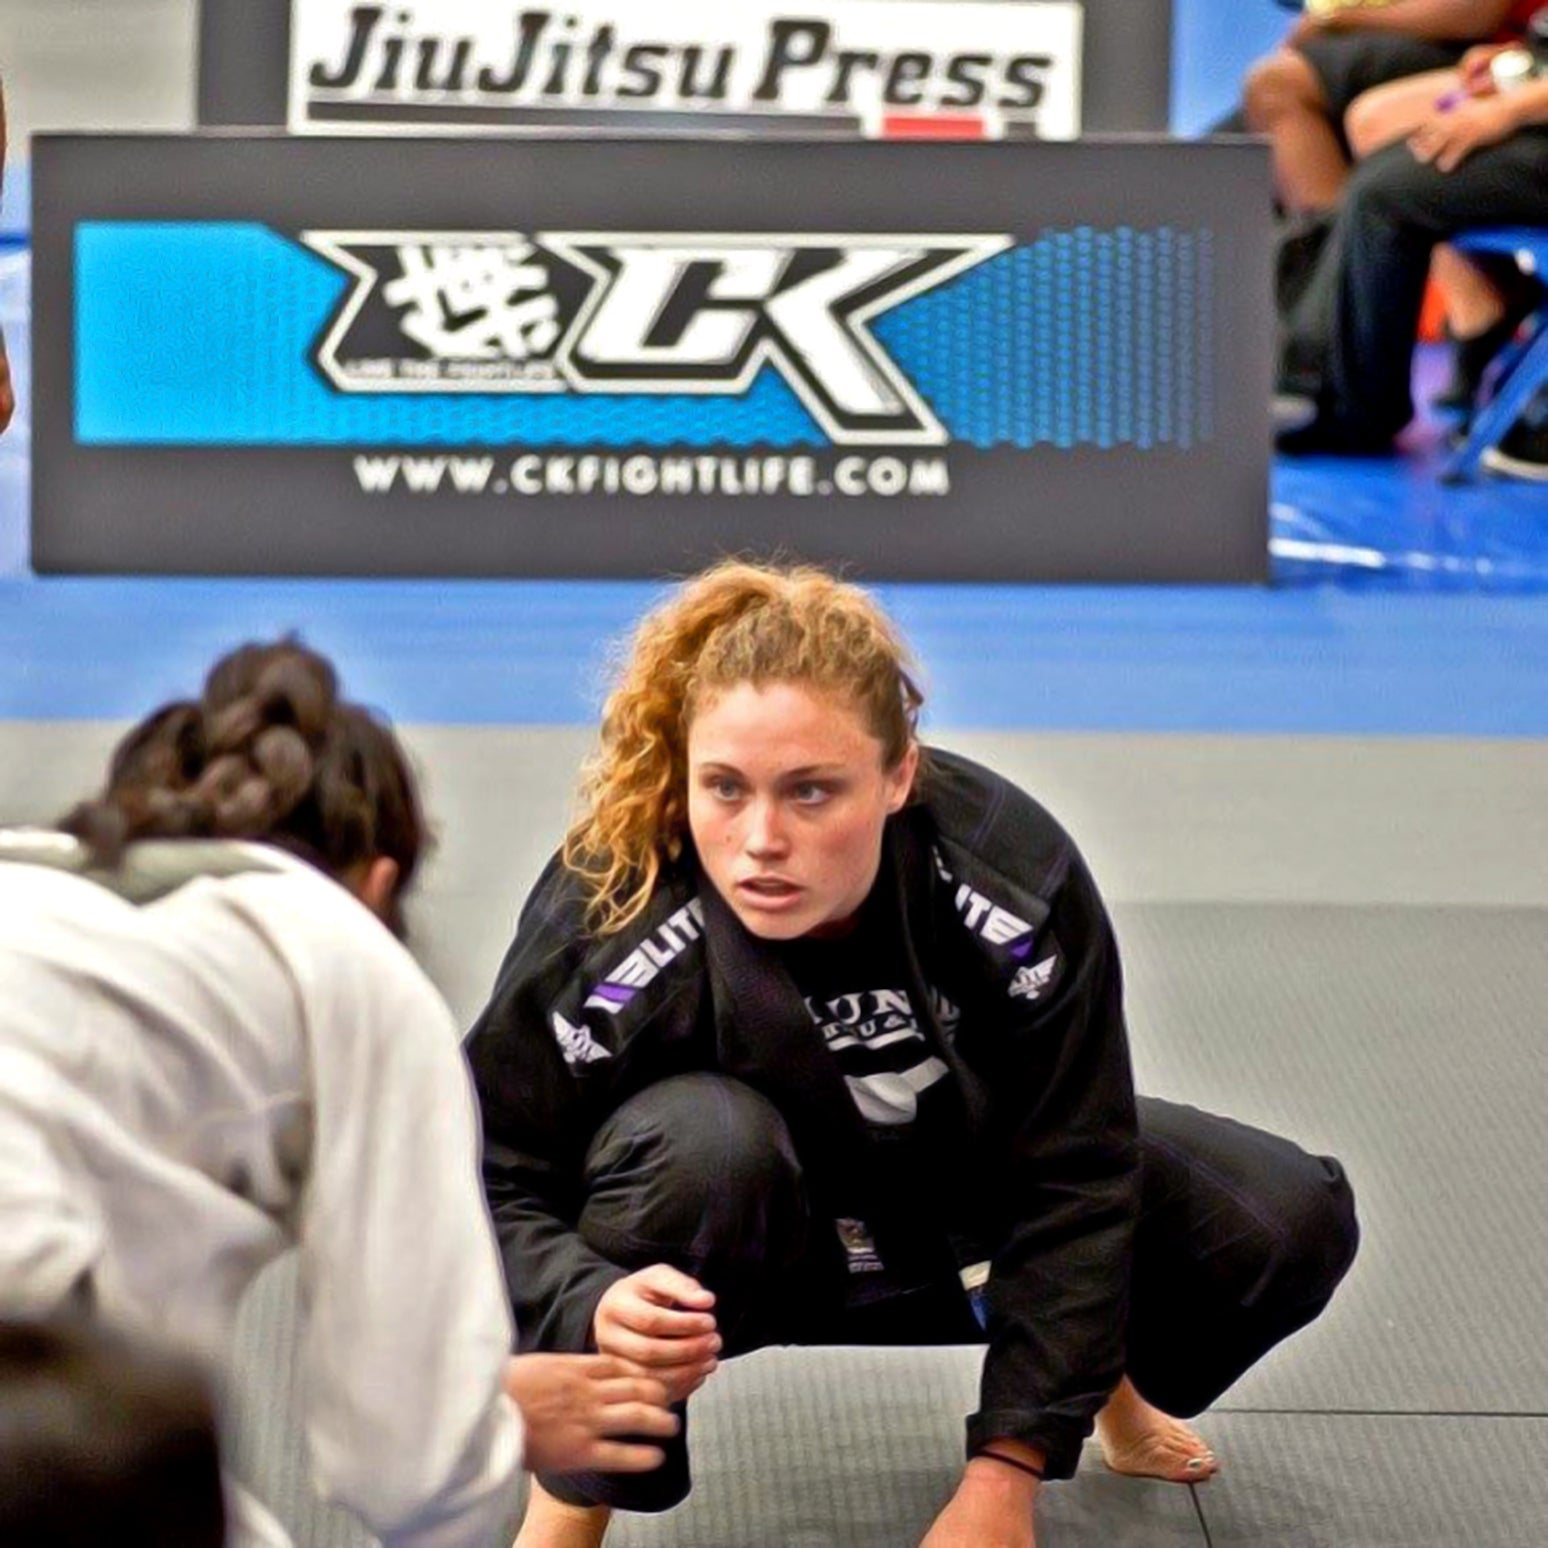 Elite Sports Team Elite Bjj Fighter Michelle Nicole Dunchus Image3